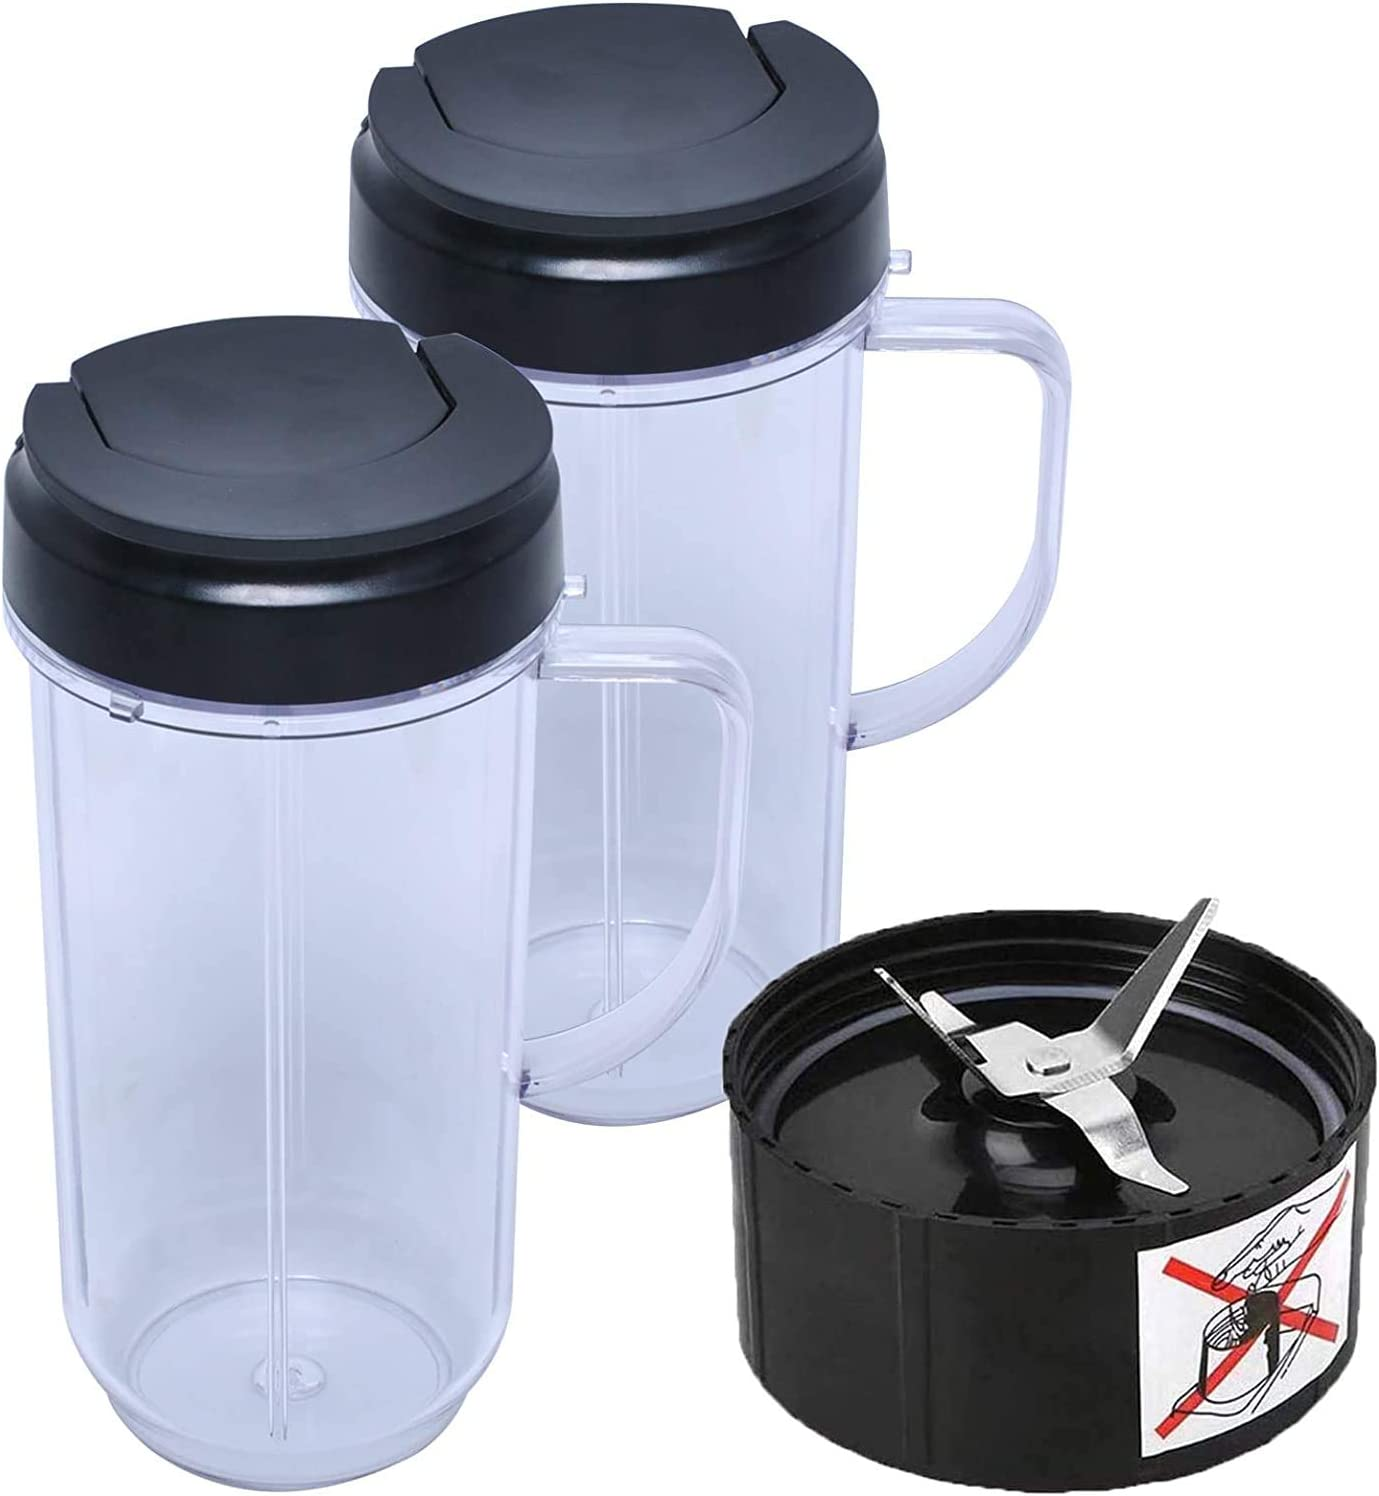 22 oz Tall Cup with Flip Top To-Go Lid and Cross Blade Replacement Parts for Magic Bullet 250W MB1001 Blenders